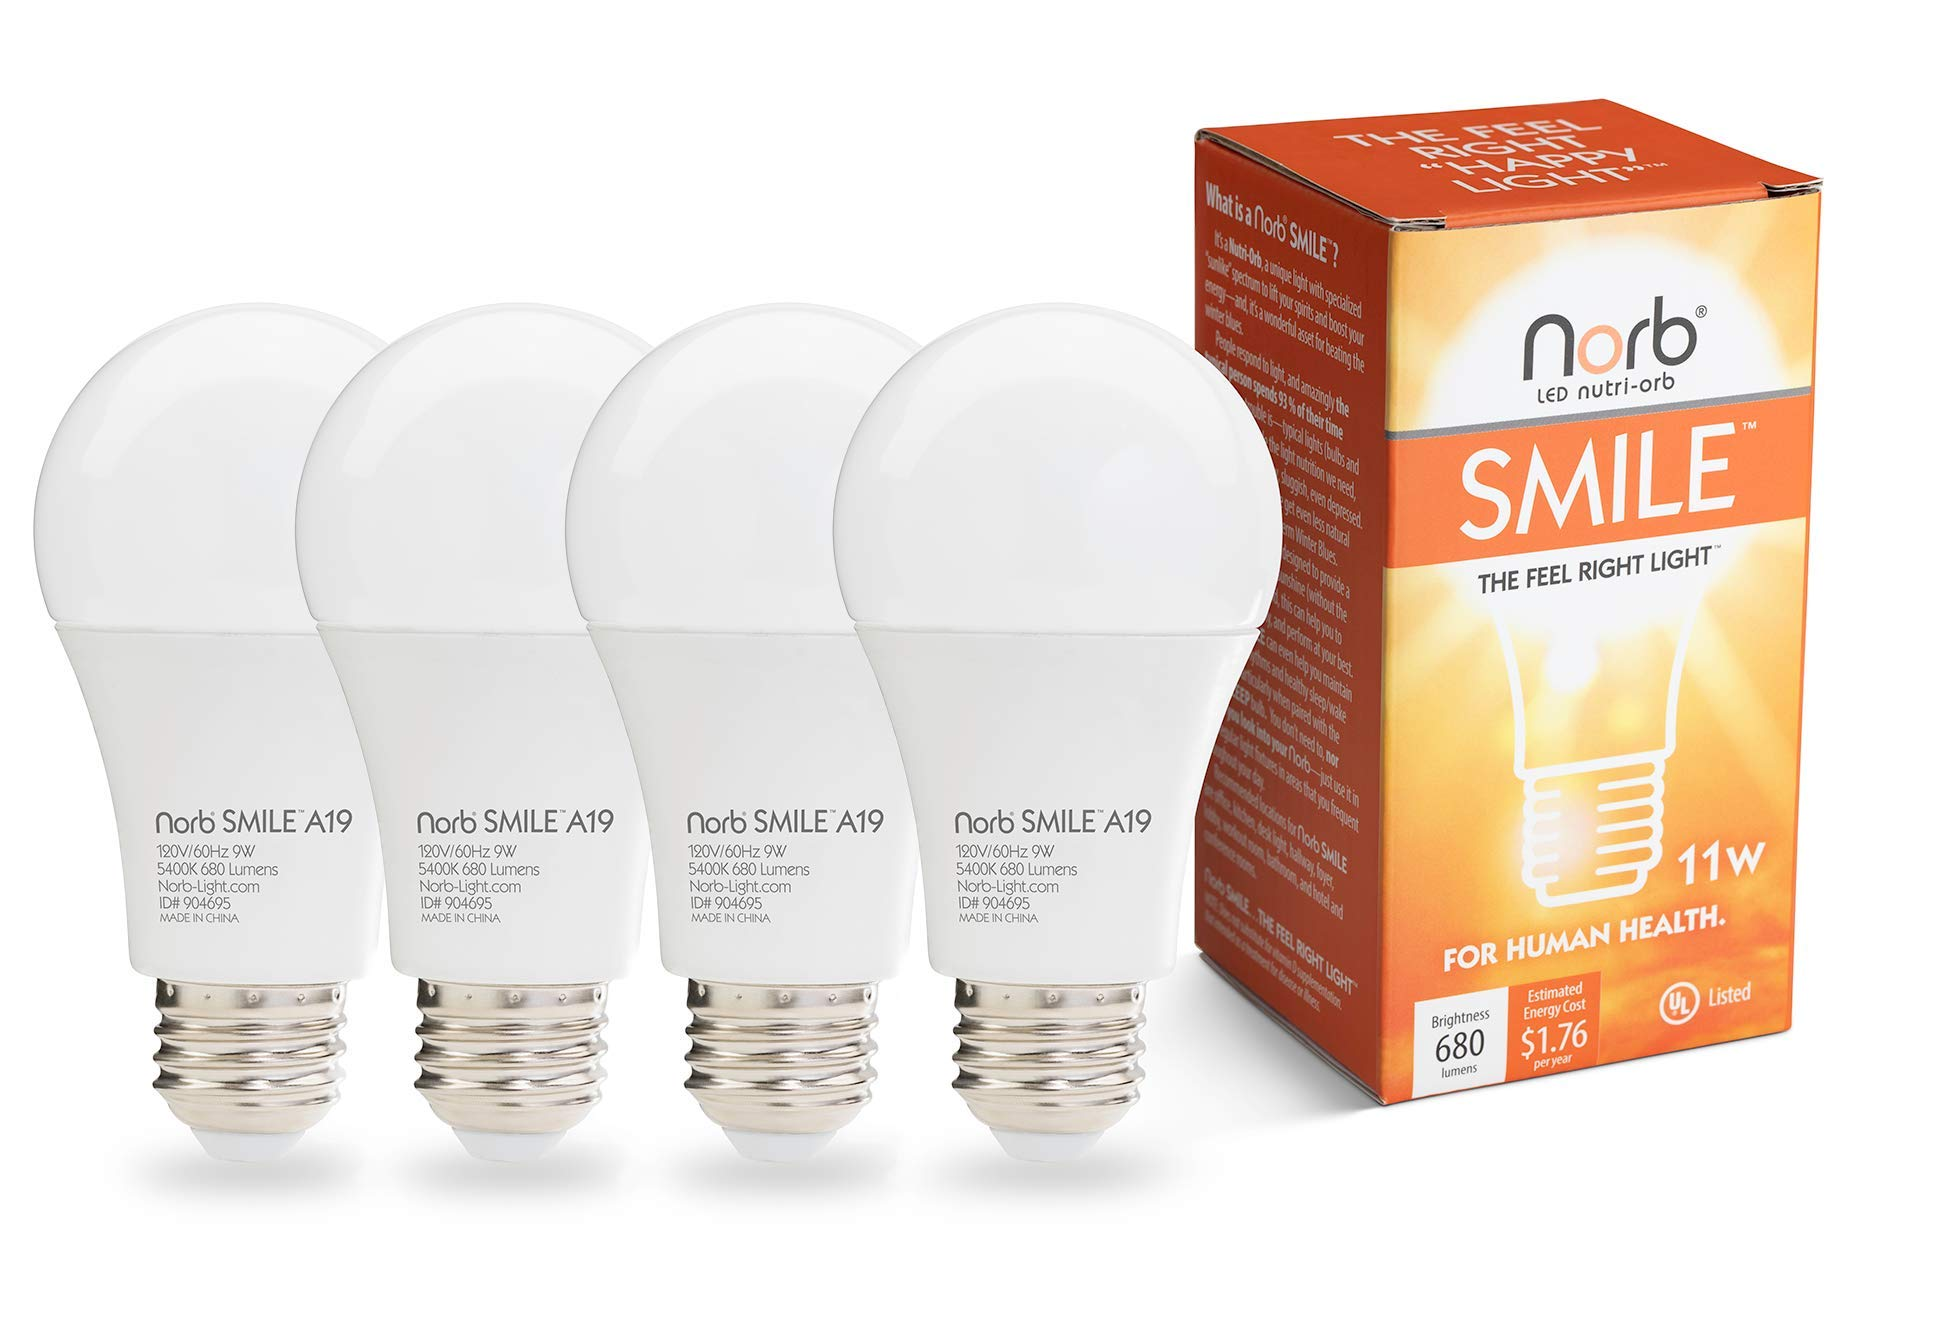 NorbSMILE 4 Pack LED Light Bulbs - Sunlike Spectrum, Supplement to SAD Light - The ''Feel Right'' Light by Norb